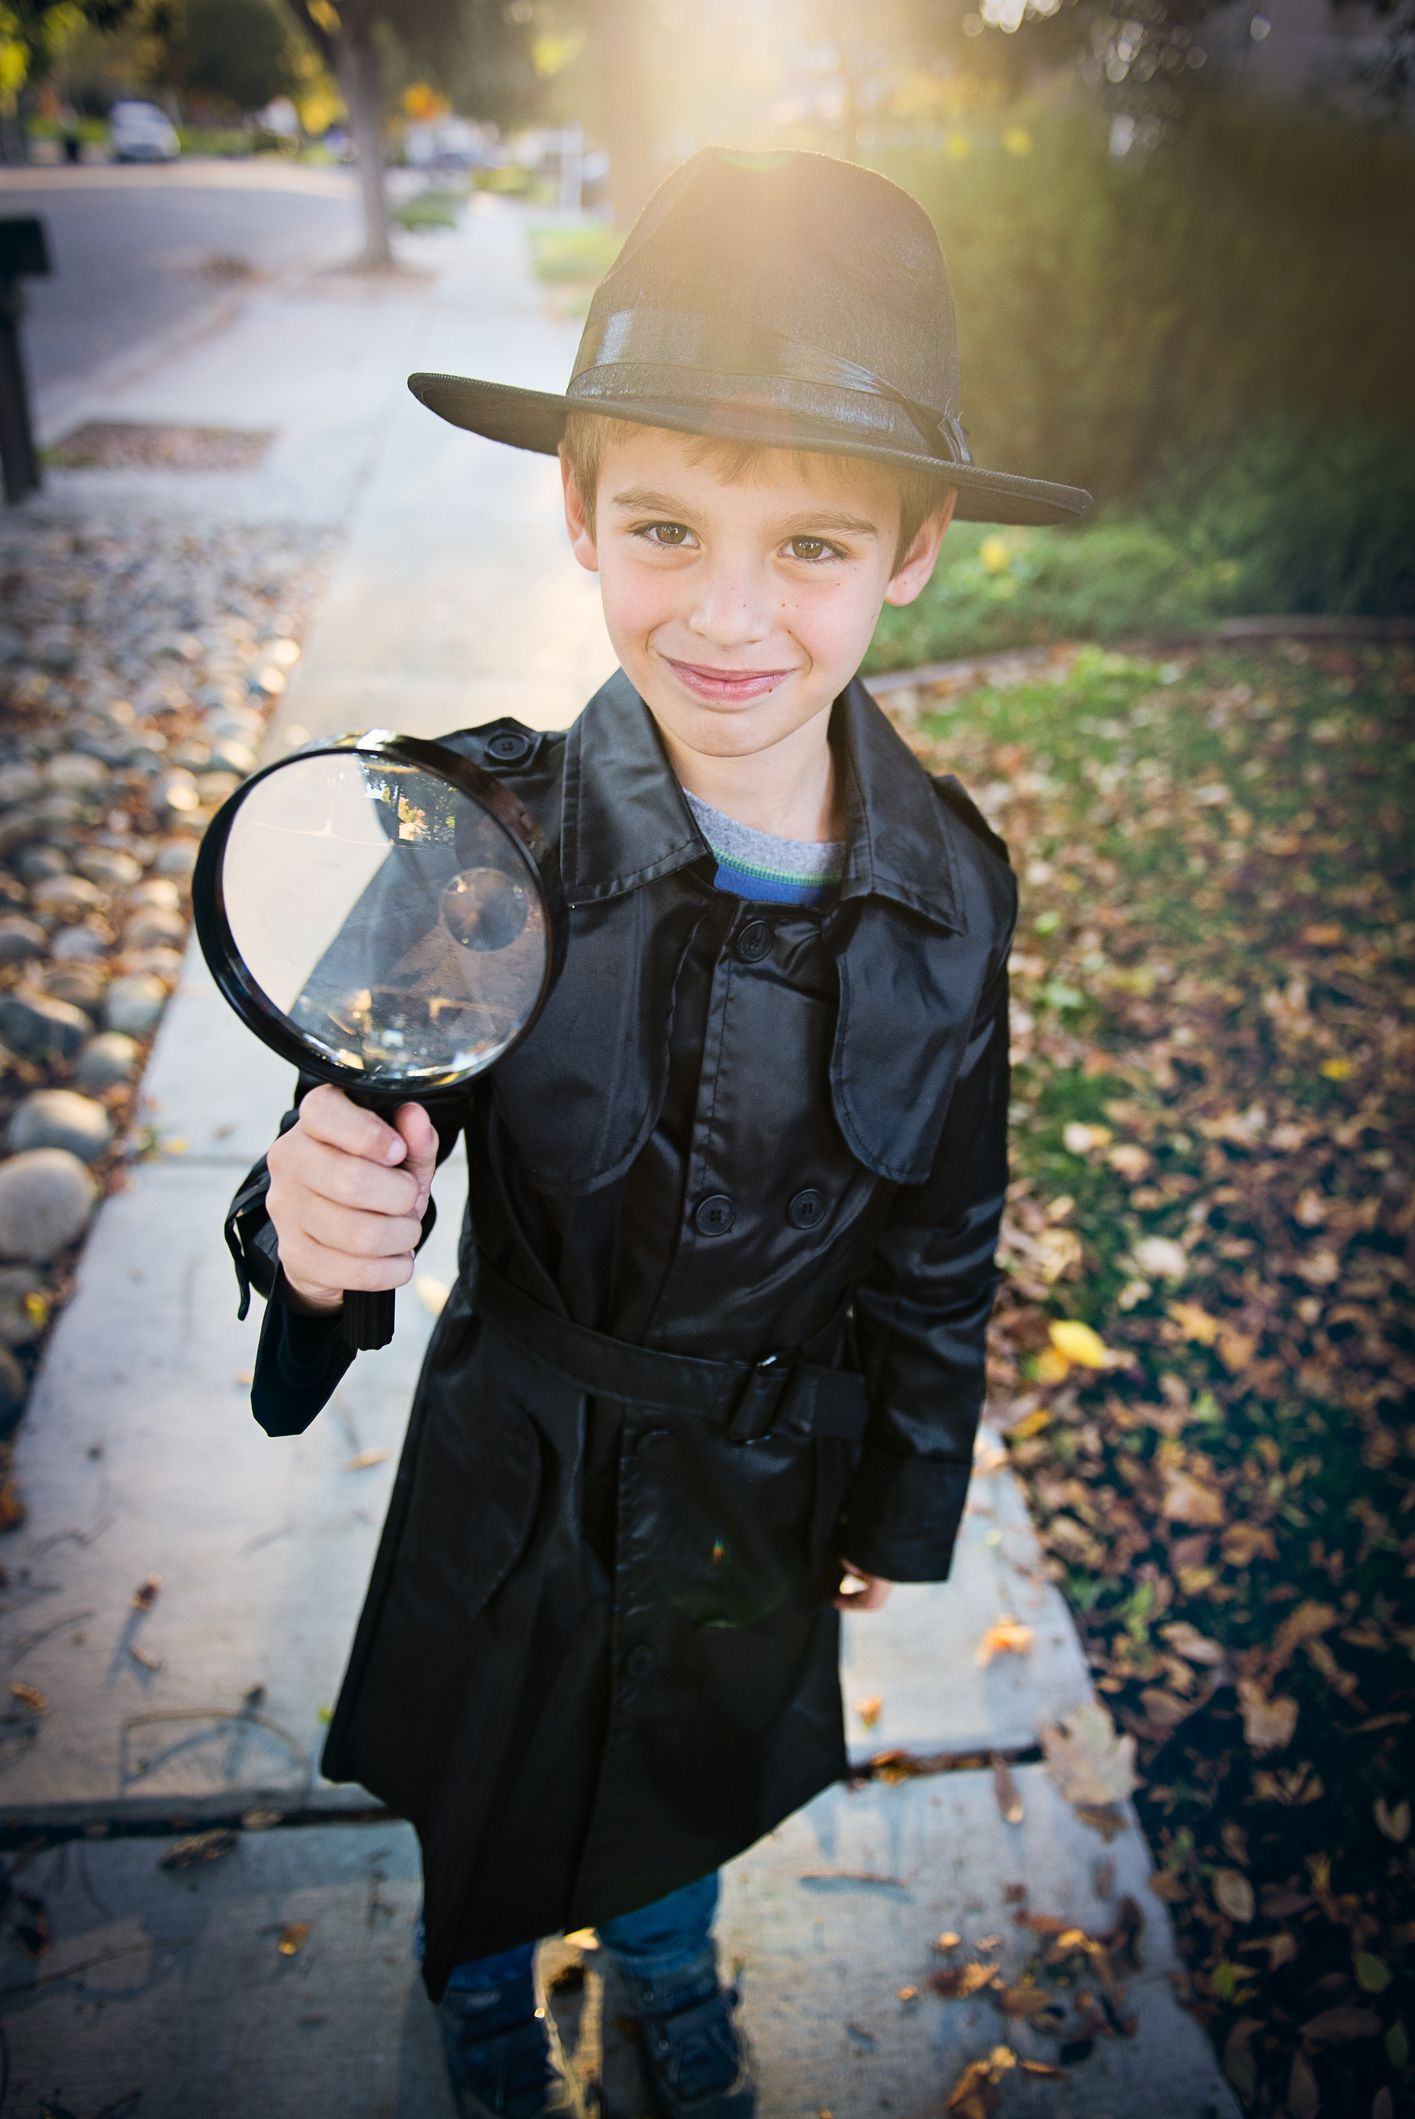 Host A Murder Mystery Party For Your Tween Or Teen